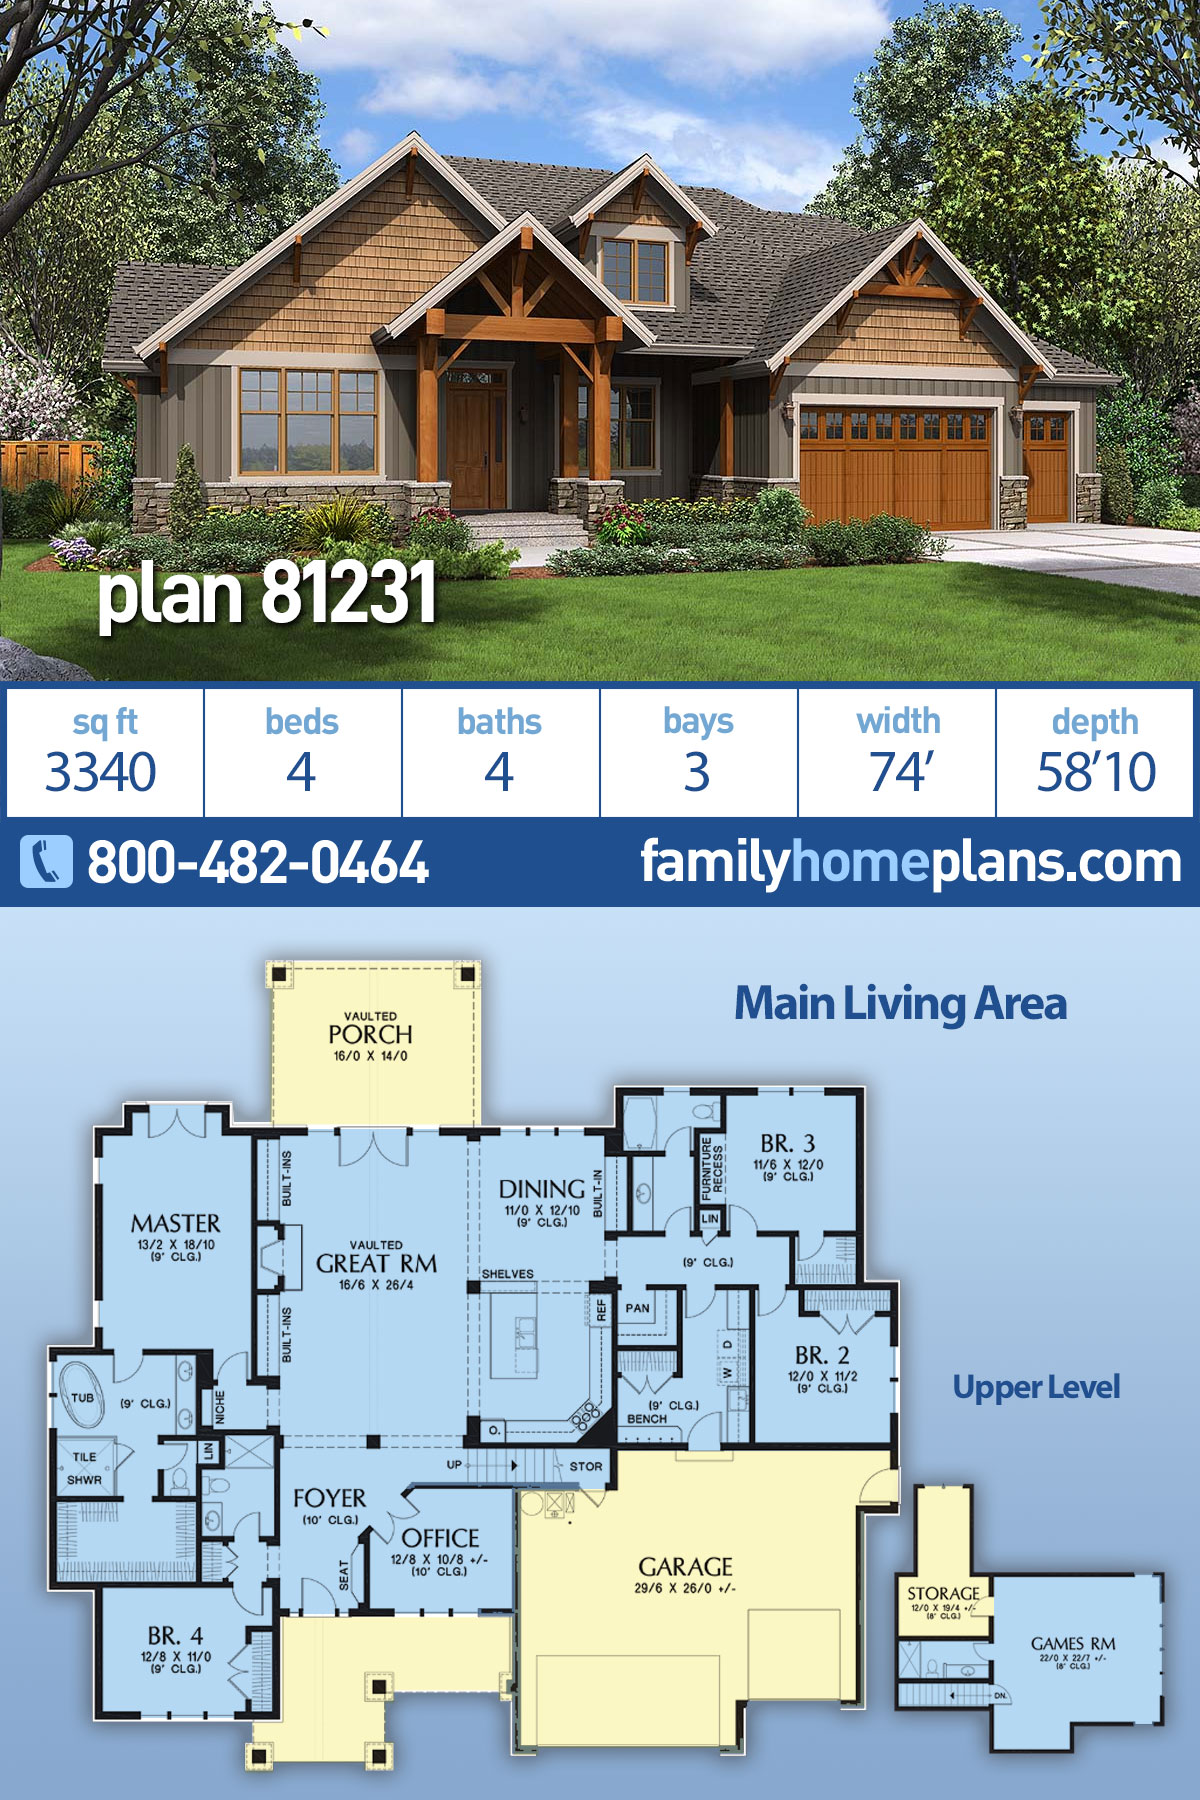 Craftsman House Plan 81231 with 4 Beds, 4 Baths, 3 Car Garage